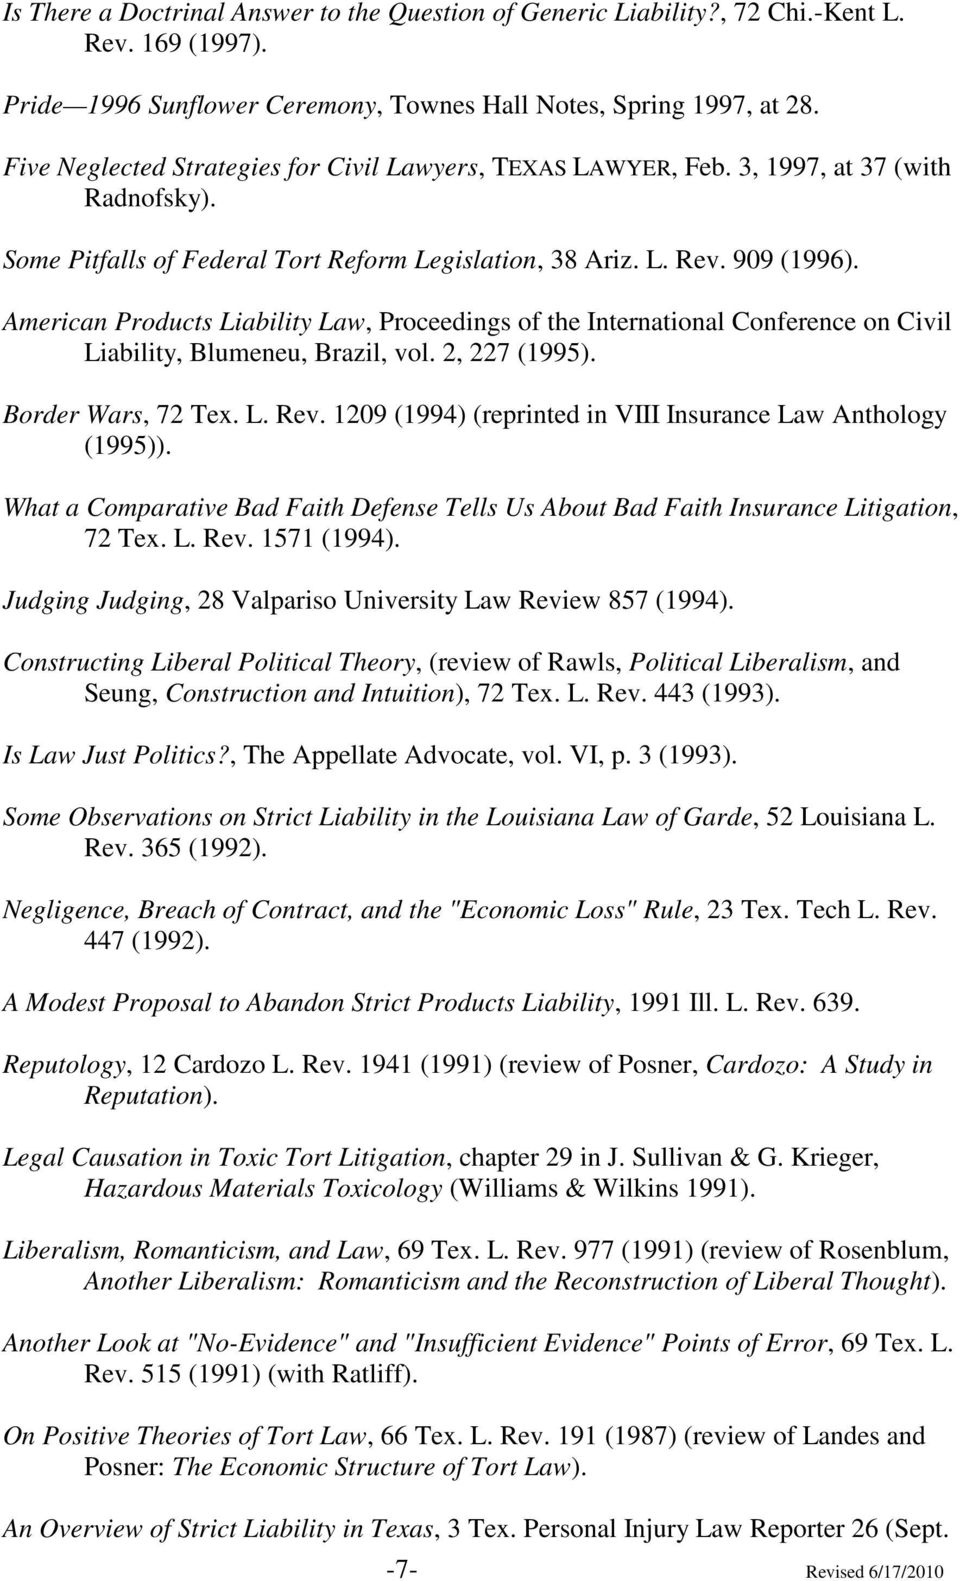 American Products Liability Law, Proceedings of the International Conference on Civil Liability, Blumeneu, Brazil, vol. 2, 227 (1995). Border Wars, 72 Tex. L. Rev.